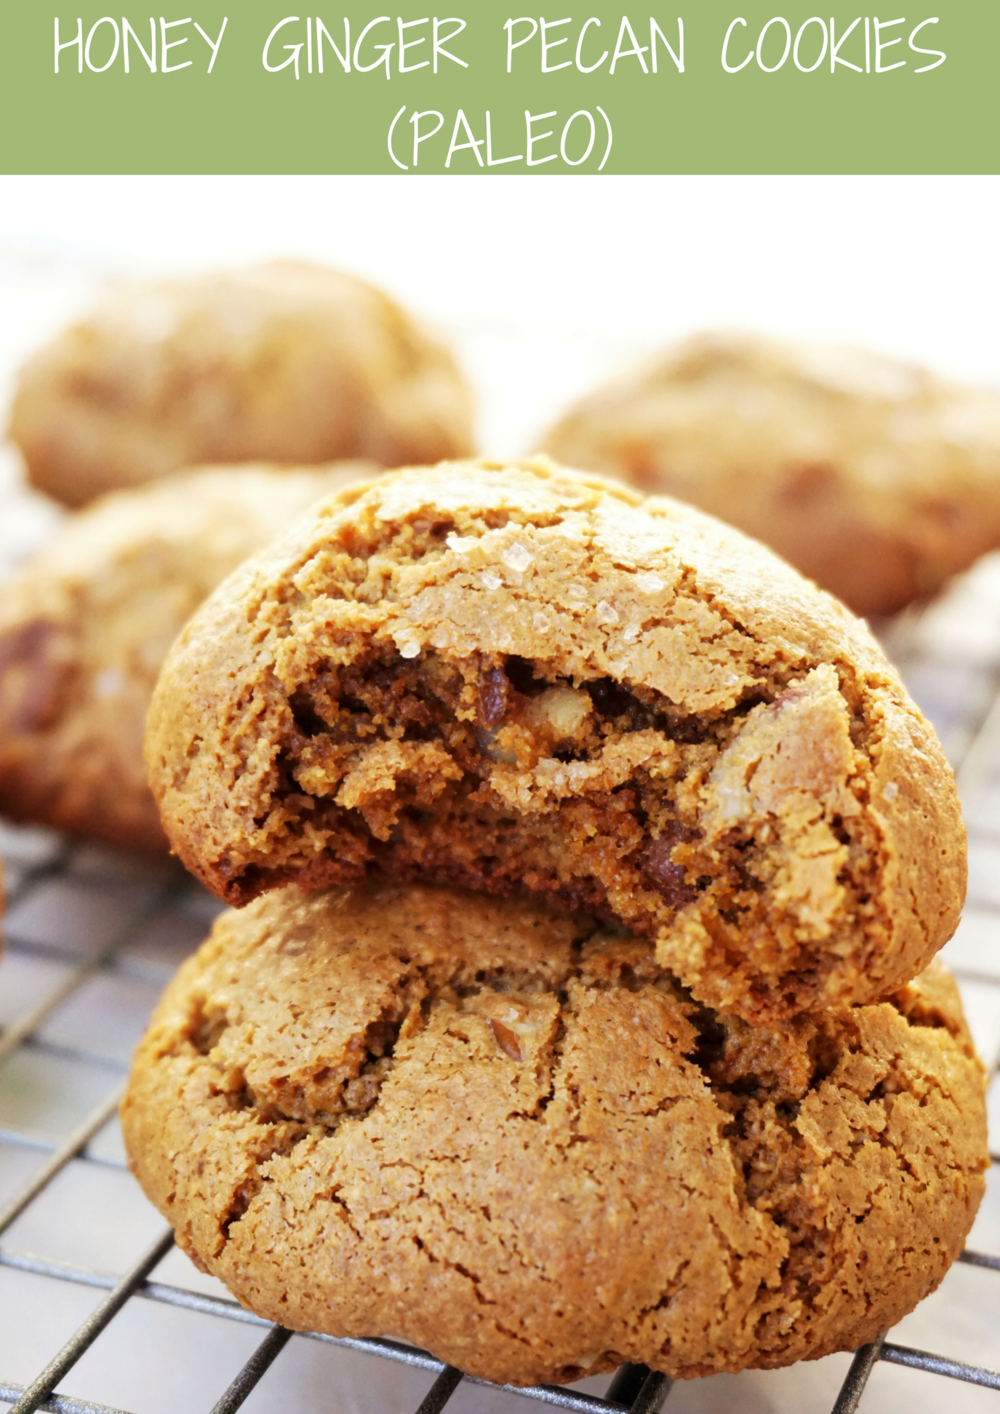 HONEY GINGER PECAN COOKIES (PALEO).png